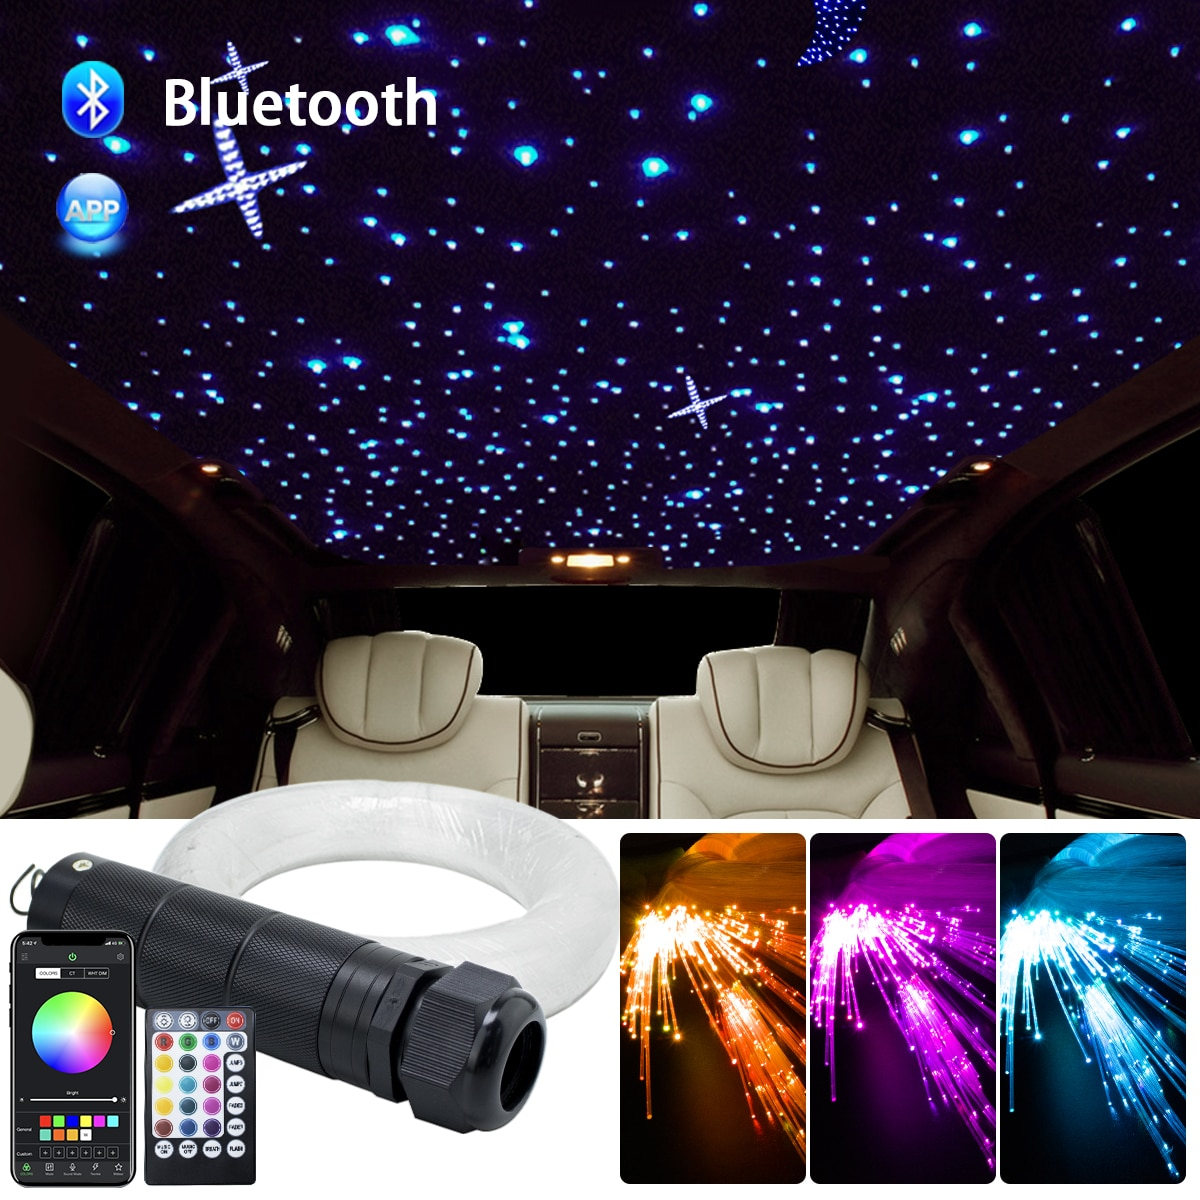 DC12V 6W RGB  Car Roof Star Lights LED Fiber Optic star ceiling Light kits  2M 0.75mm 100~380pcs Optical fiber with RF control